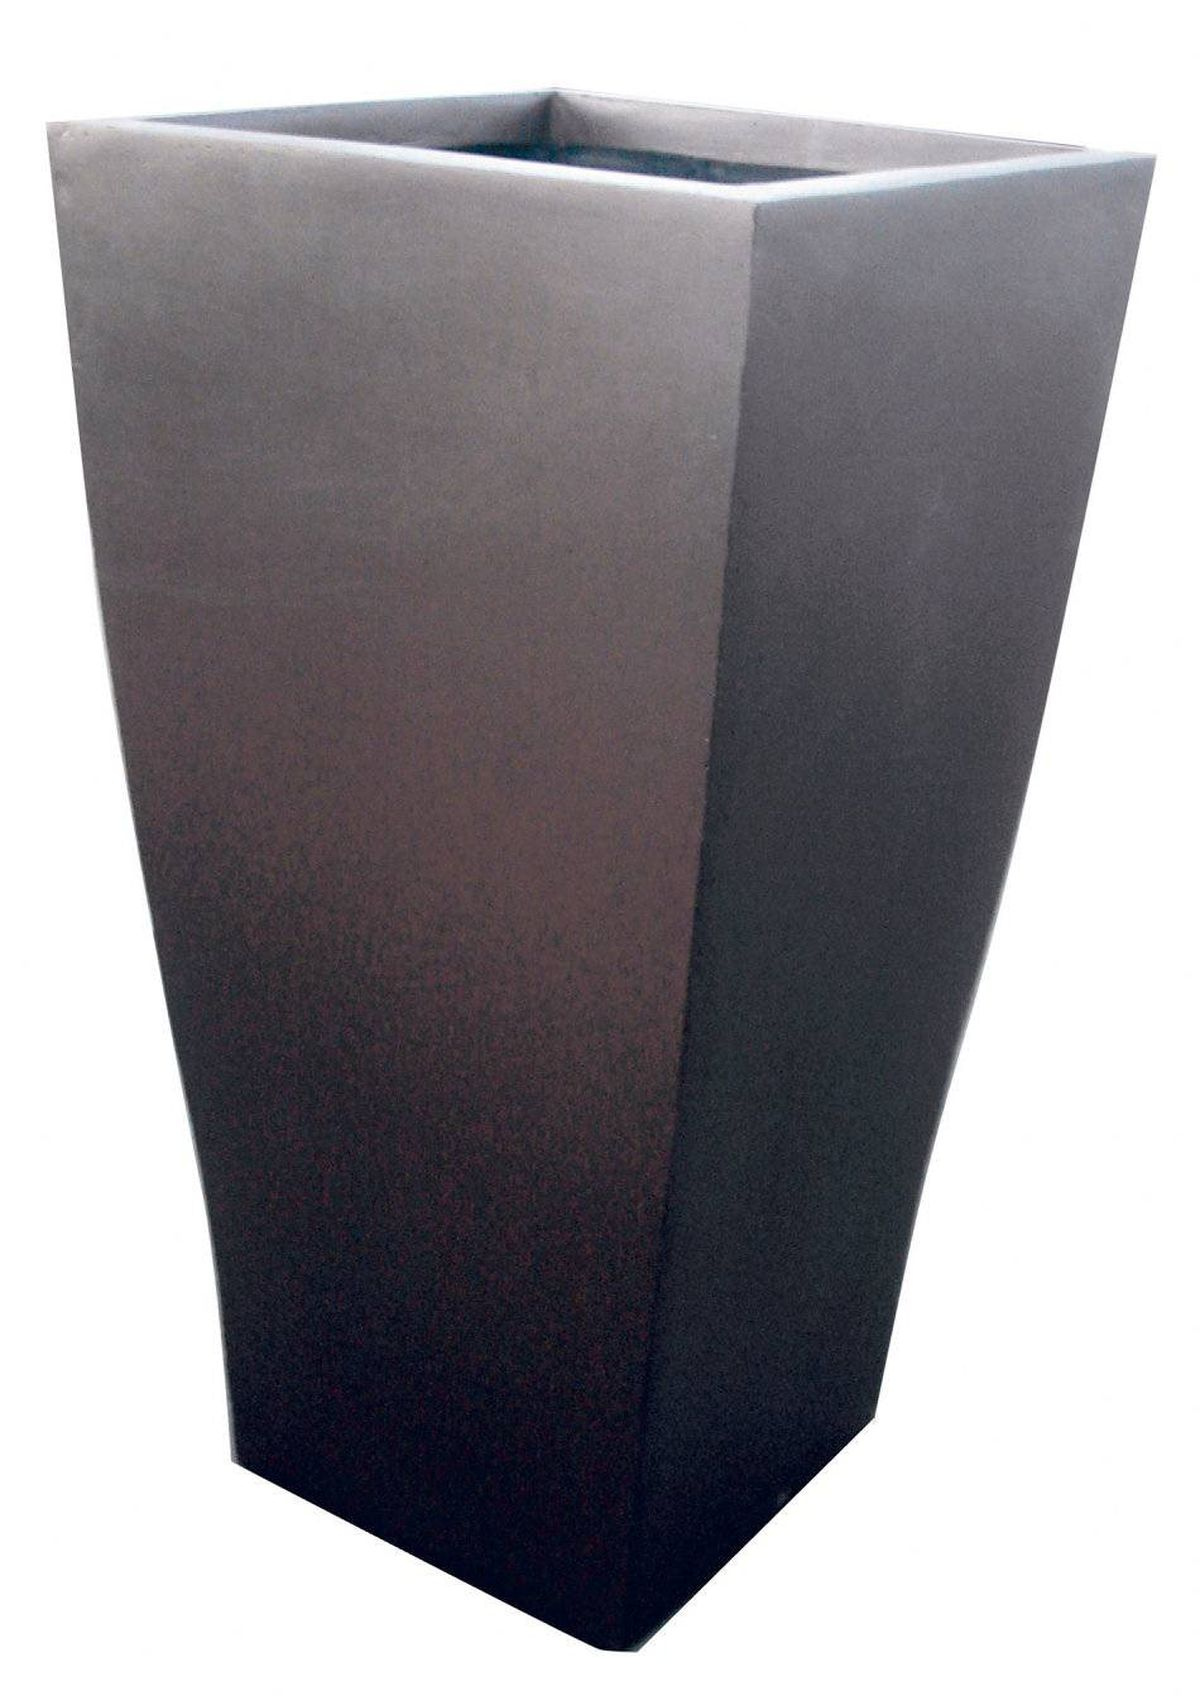 Made from durable, lightweight fibreglass, Perfect Home's sleek, hand-painted Palermo Planter offers big impact without a big price tag. 15-inch planter, $10 at Home Depot (www.homedepot.ca).